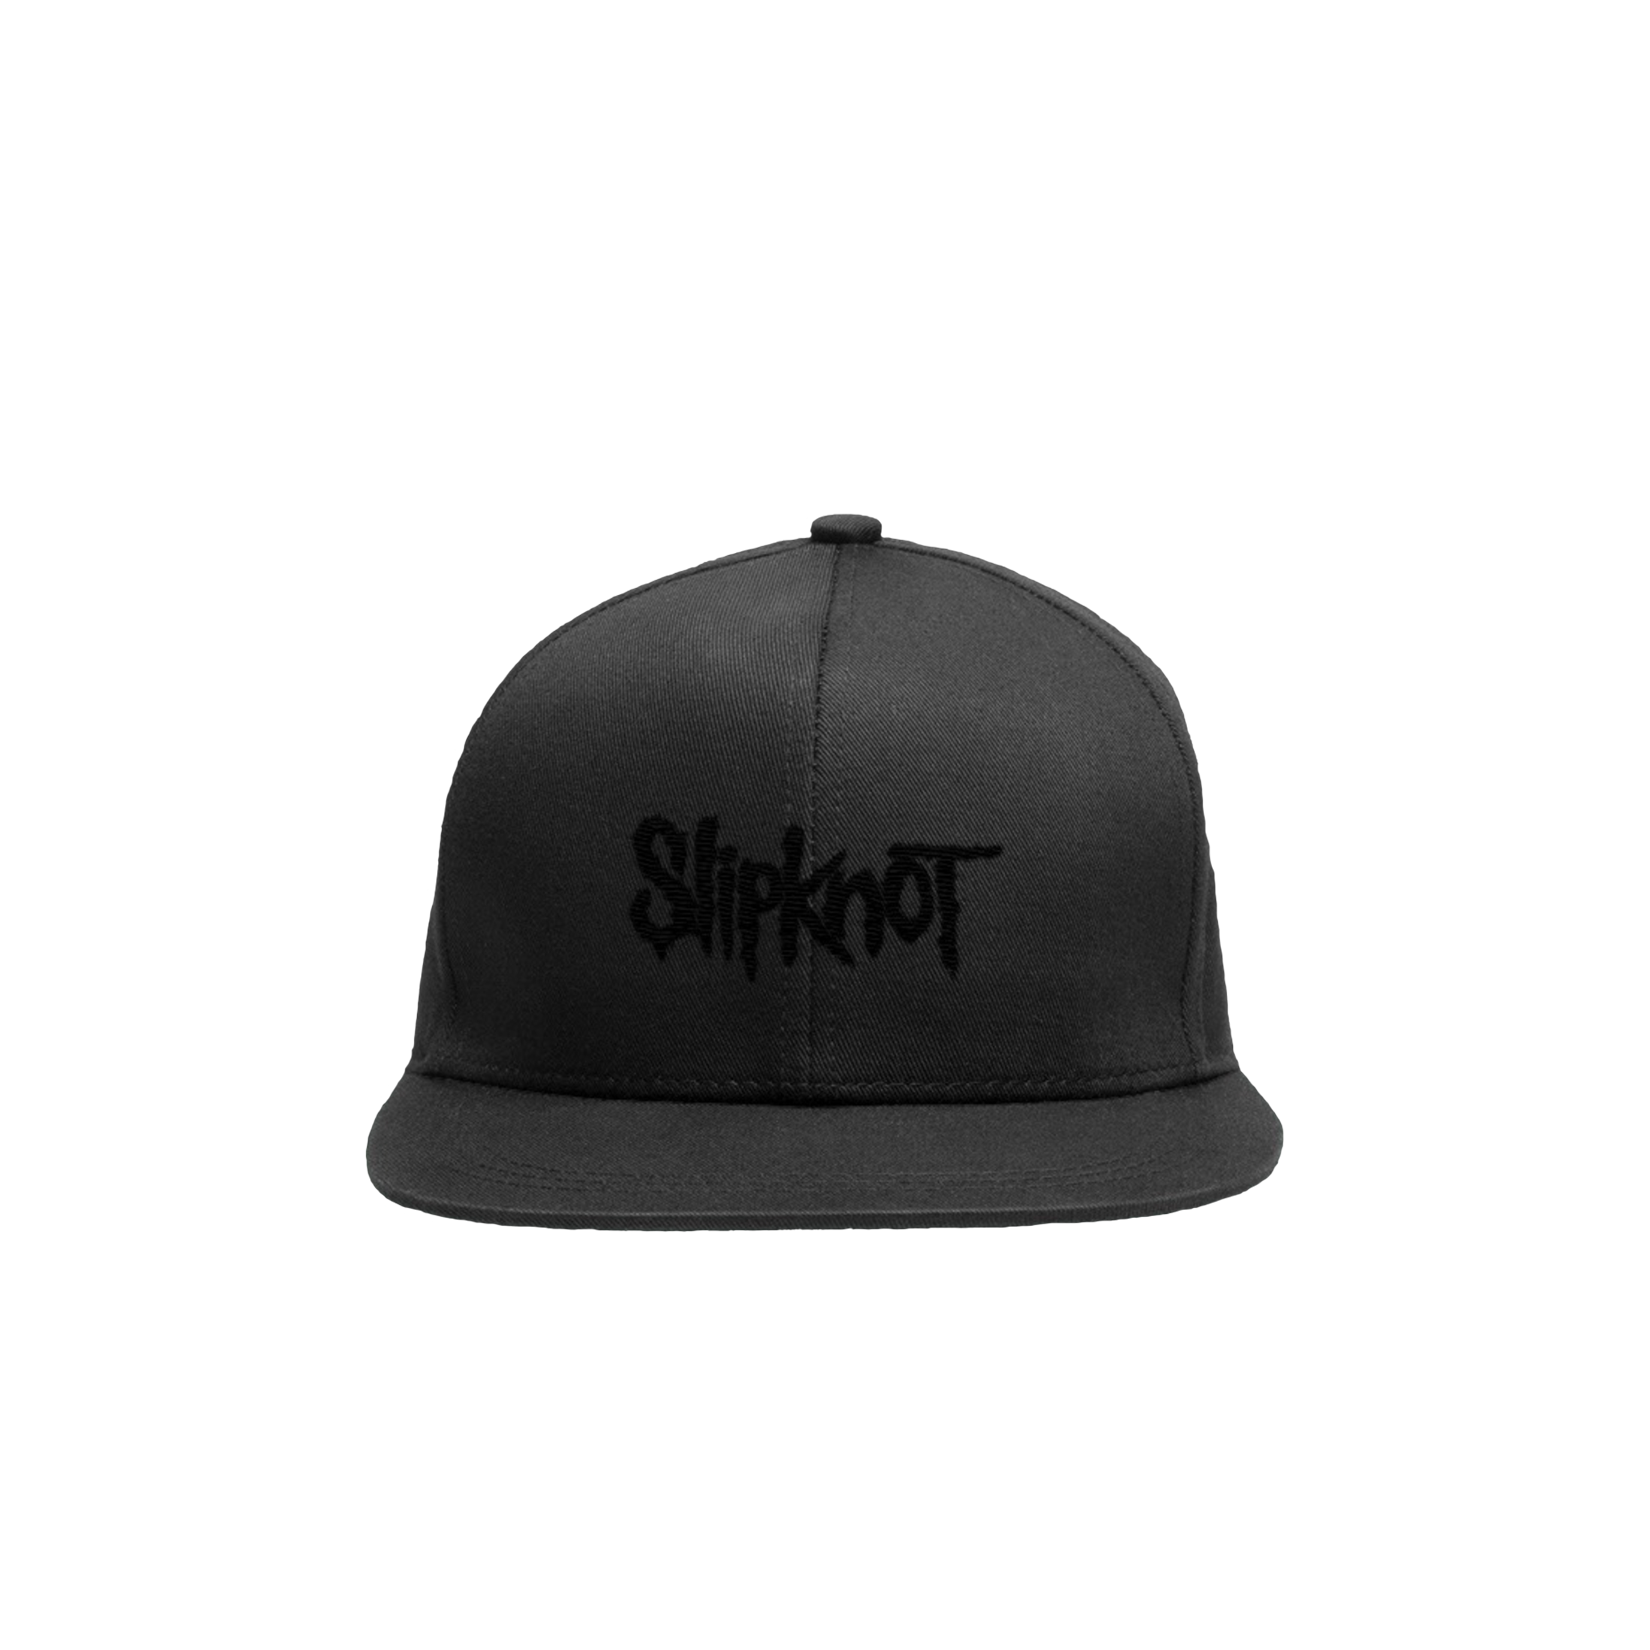 Slipknot Hat 001